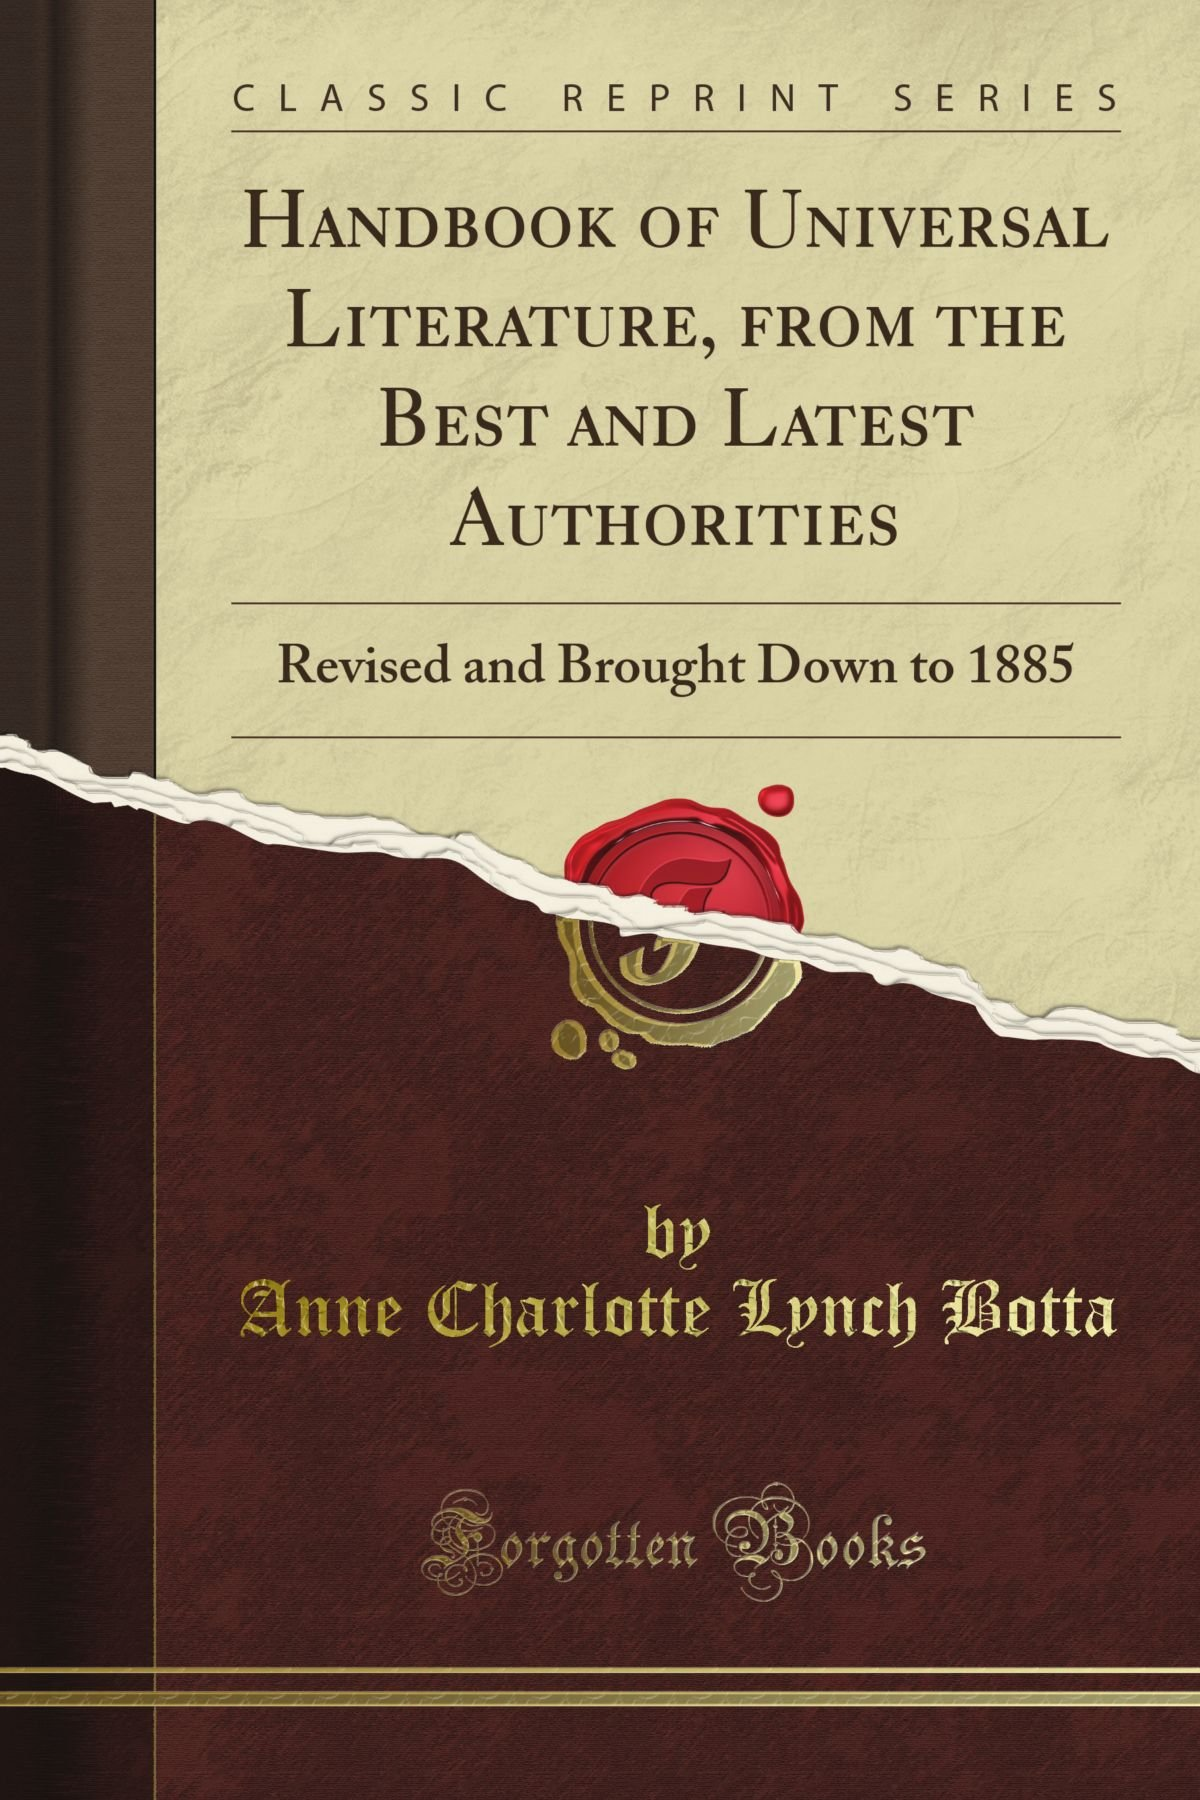 Handbook of Universal Literature, from the Best and Latest Authorities: Revised and Brought Down to 1885 (Classic Reprint) ebook